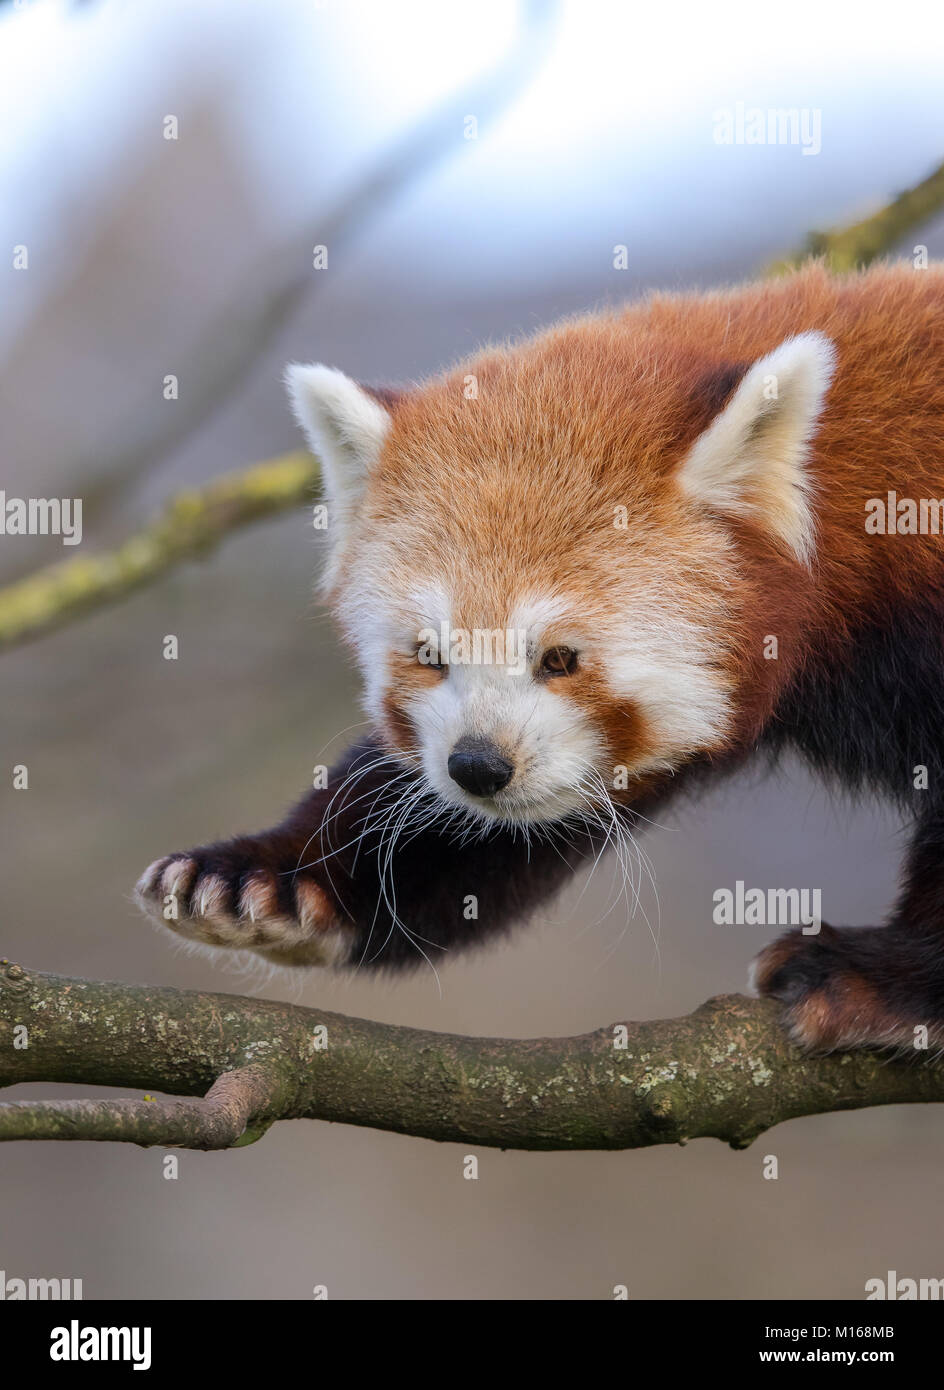 Tight close up of single, cute young red panda (Ailurus fulgens) climbing trees & having fun! Big fluffy ears, - Stock Image